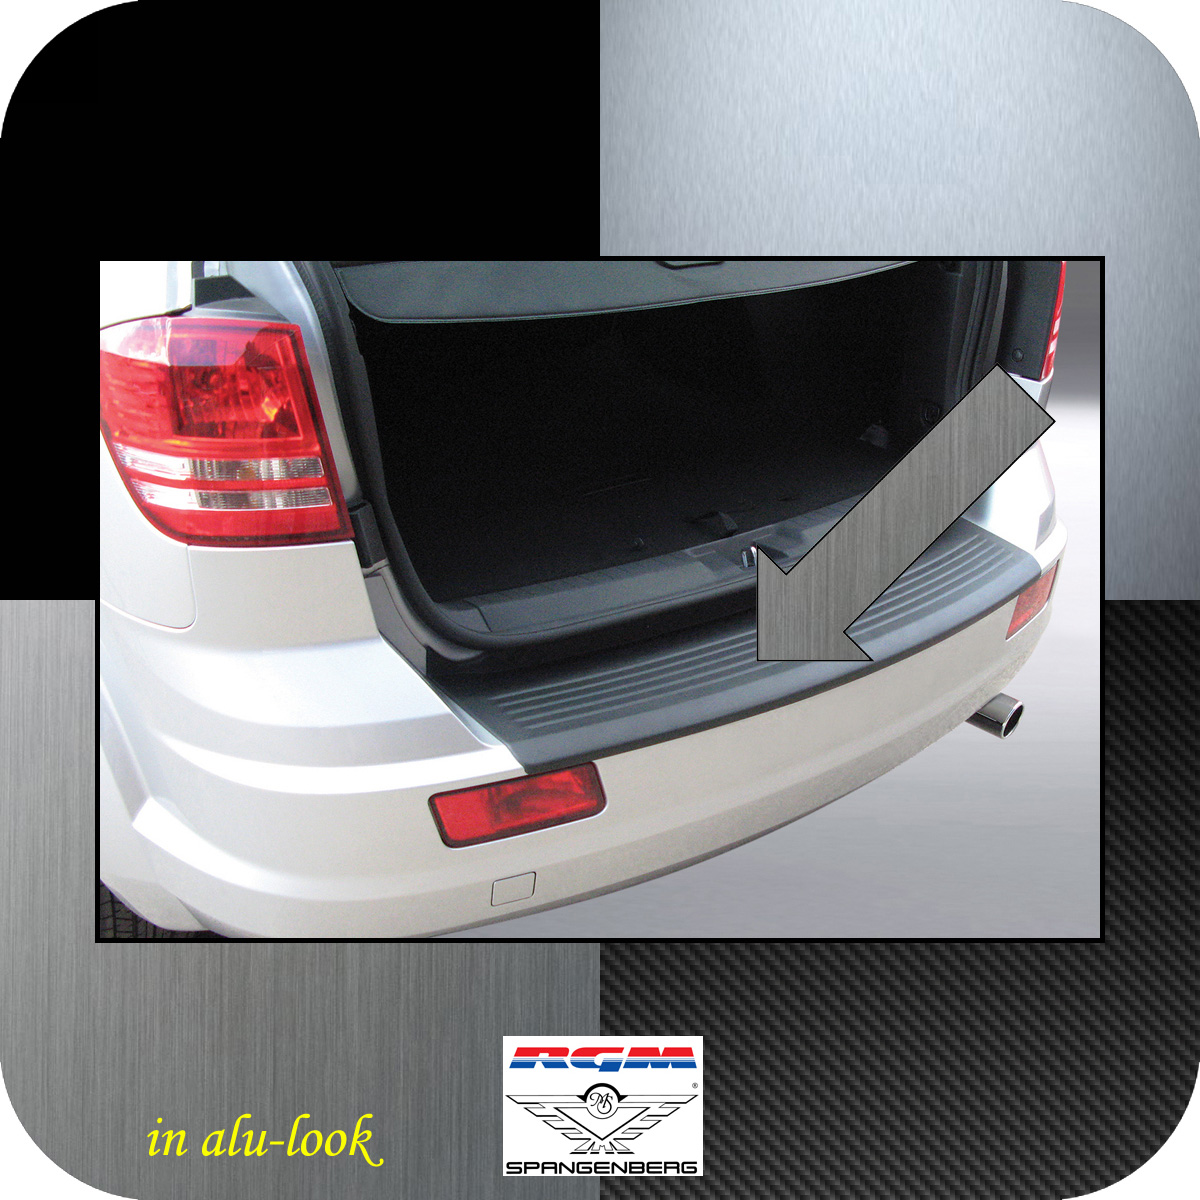 Ladekantenschutz Alu-Look Dodge Journey SUV vor facelift 2007-2011 3504267